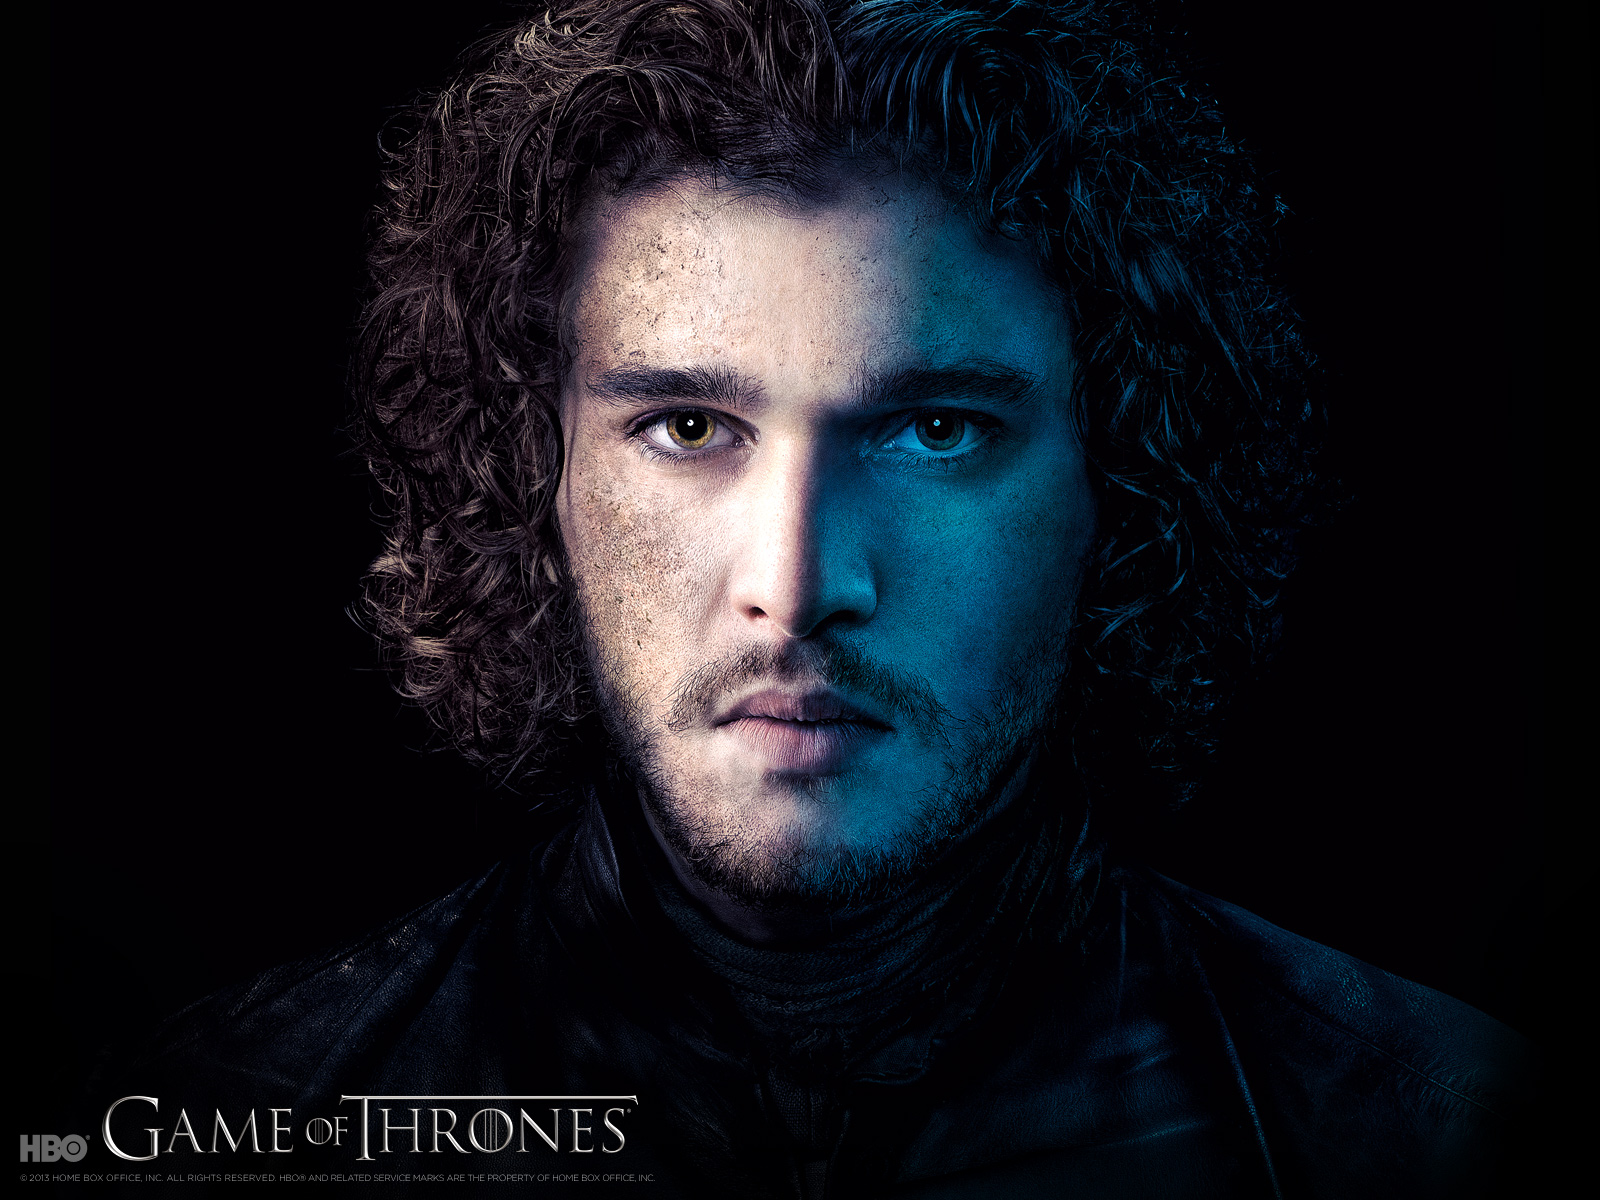 Jon Snow - Game of Thrones Wallpaper (33779423) - Fanpop